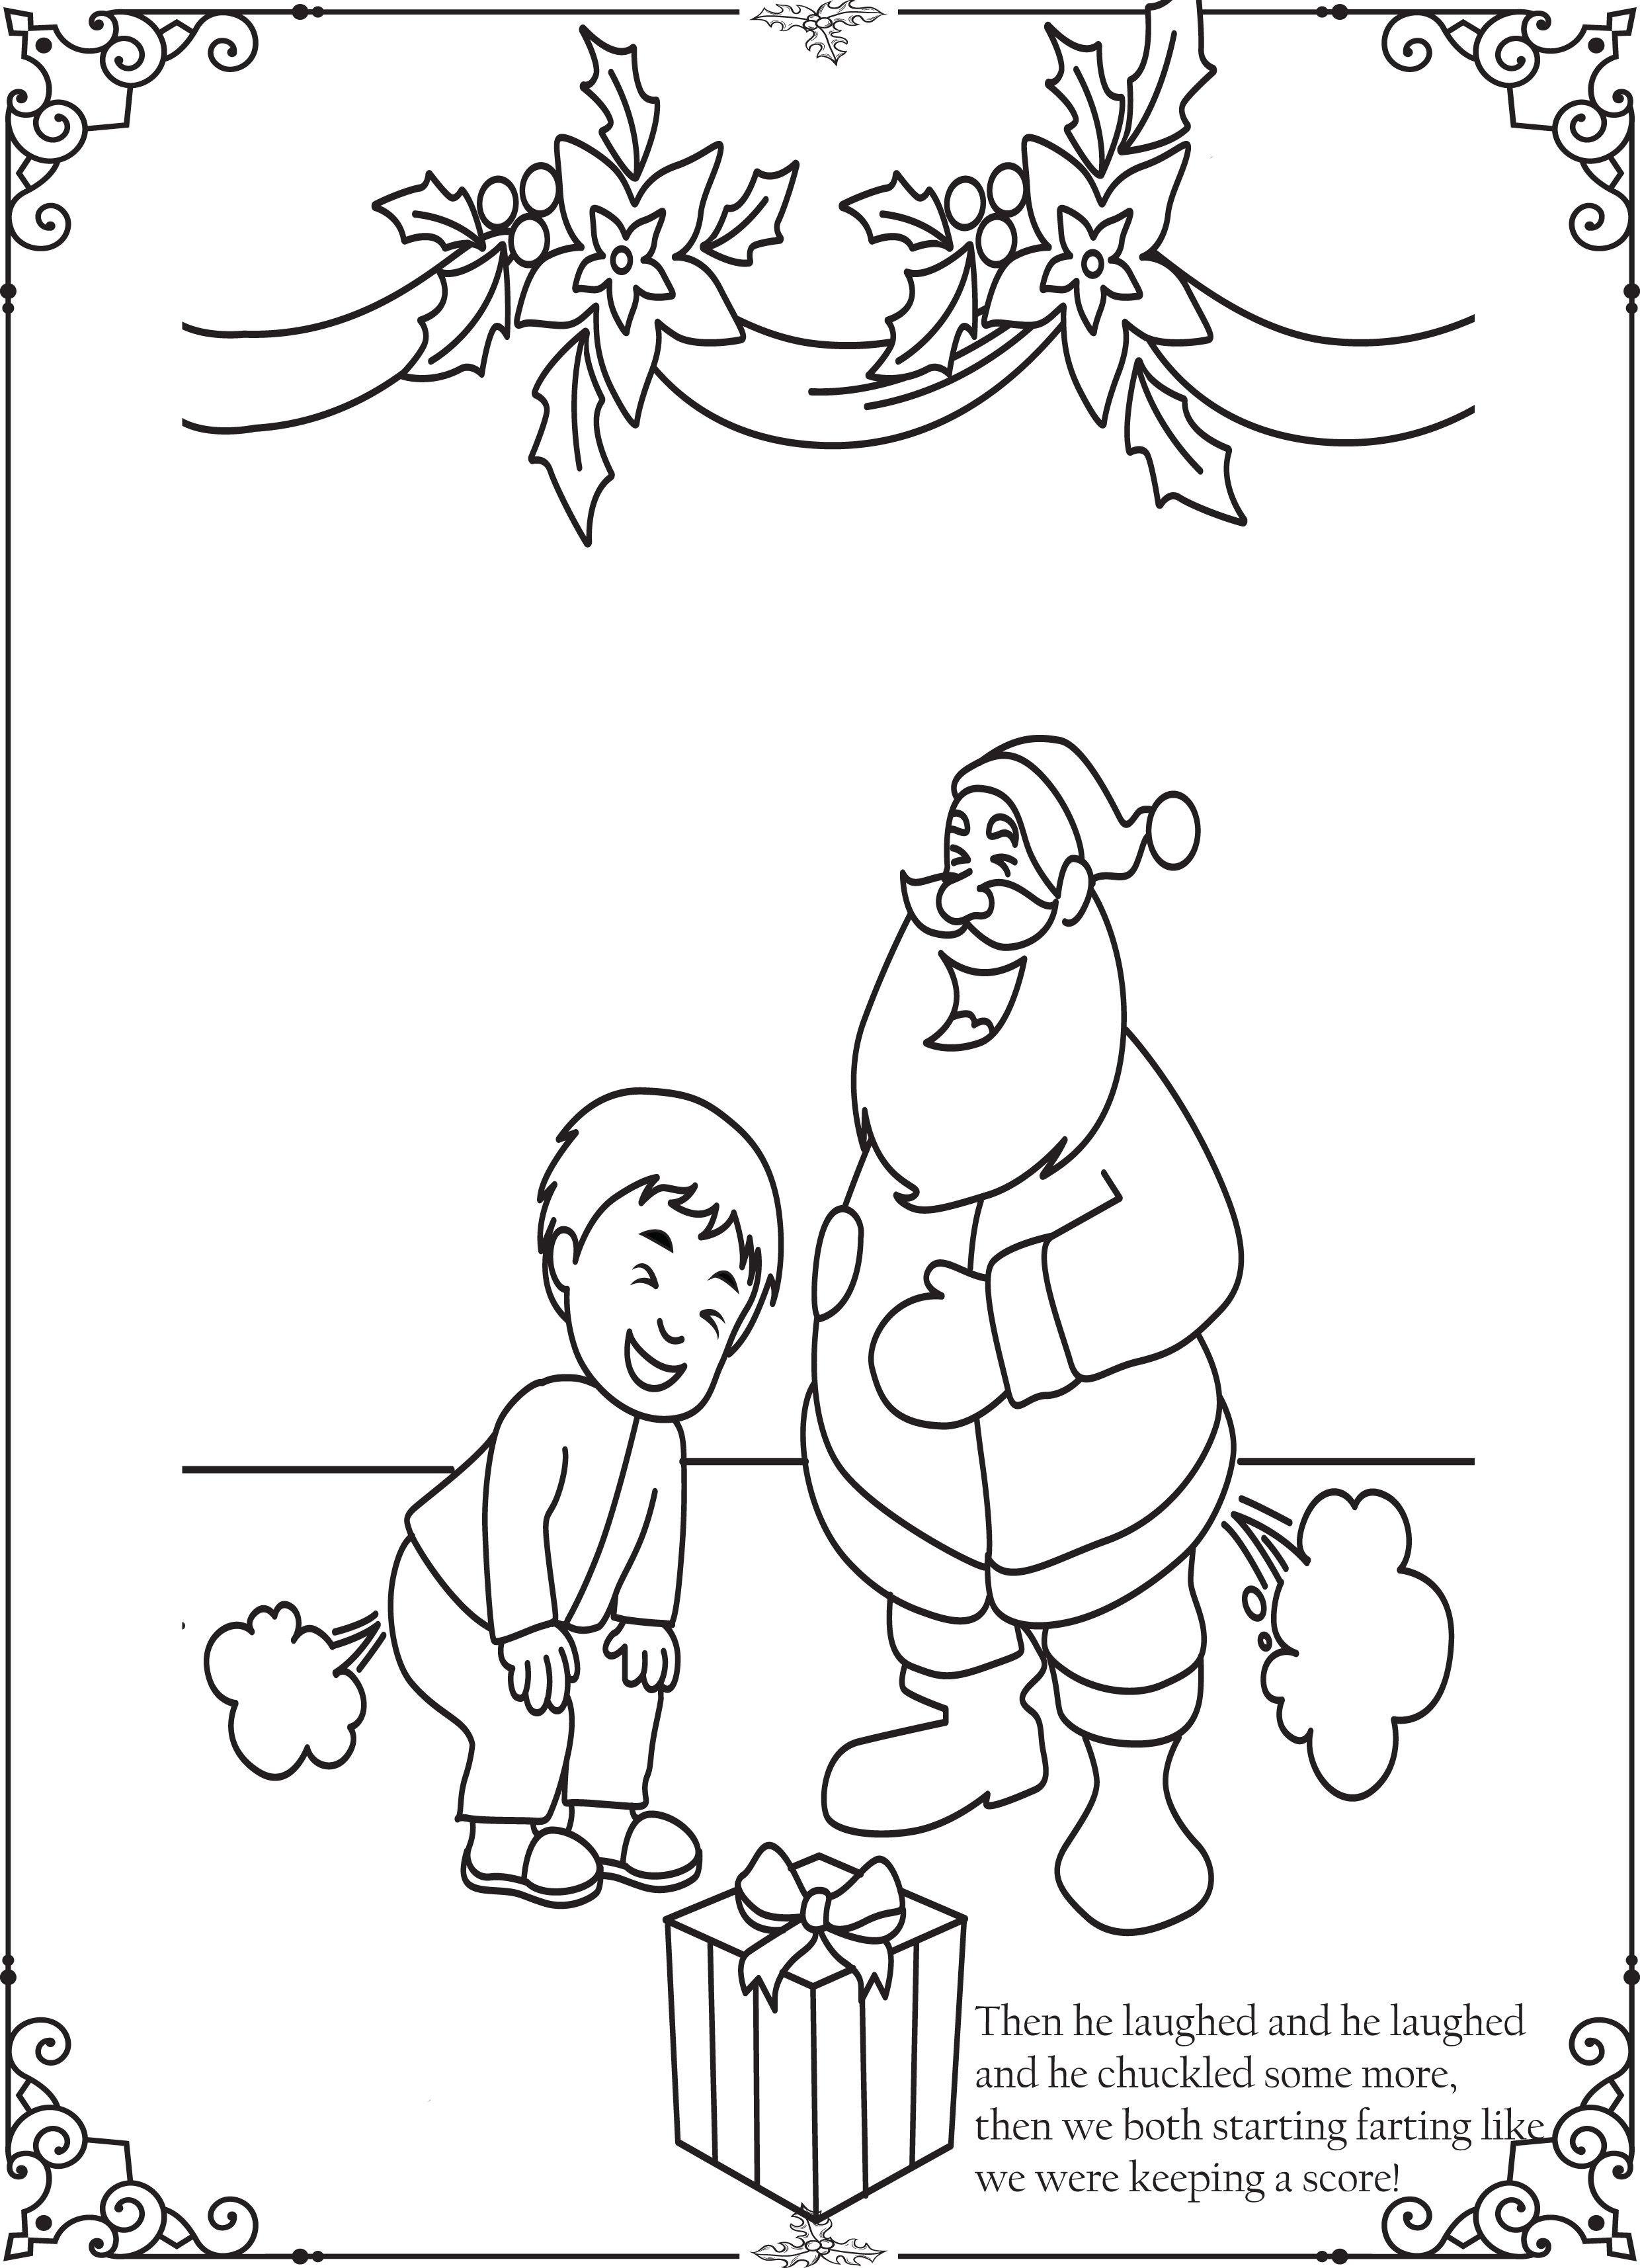 Christmas Coloring Pages Funny - Dejanato